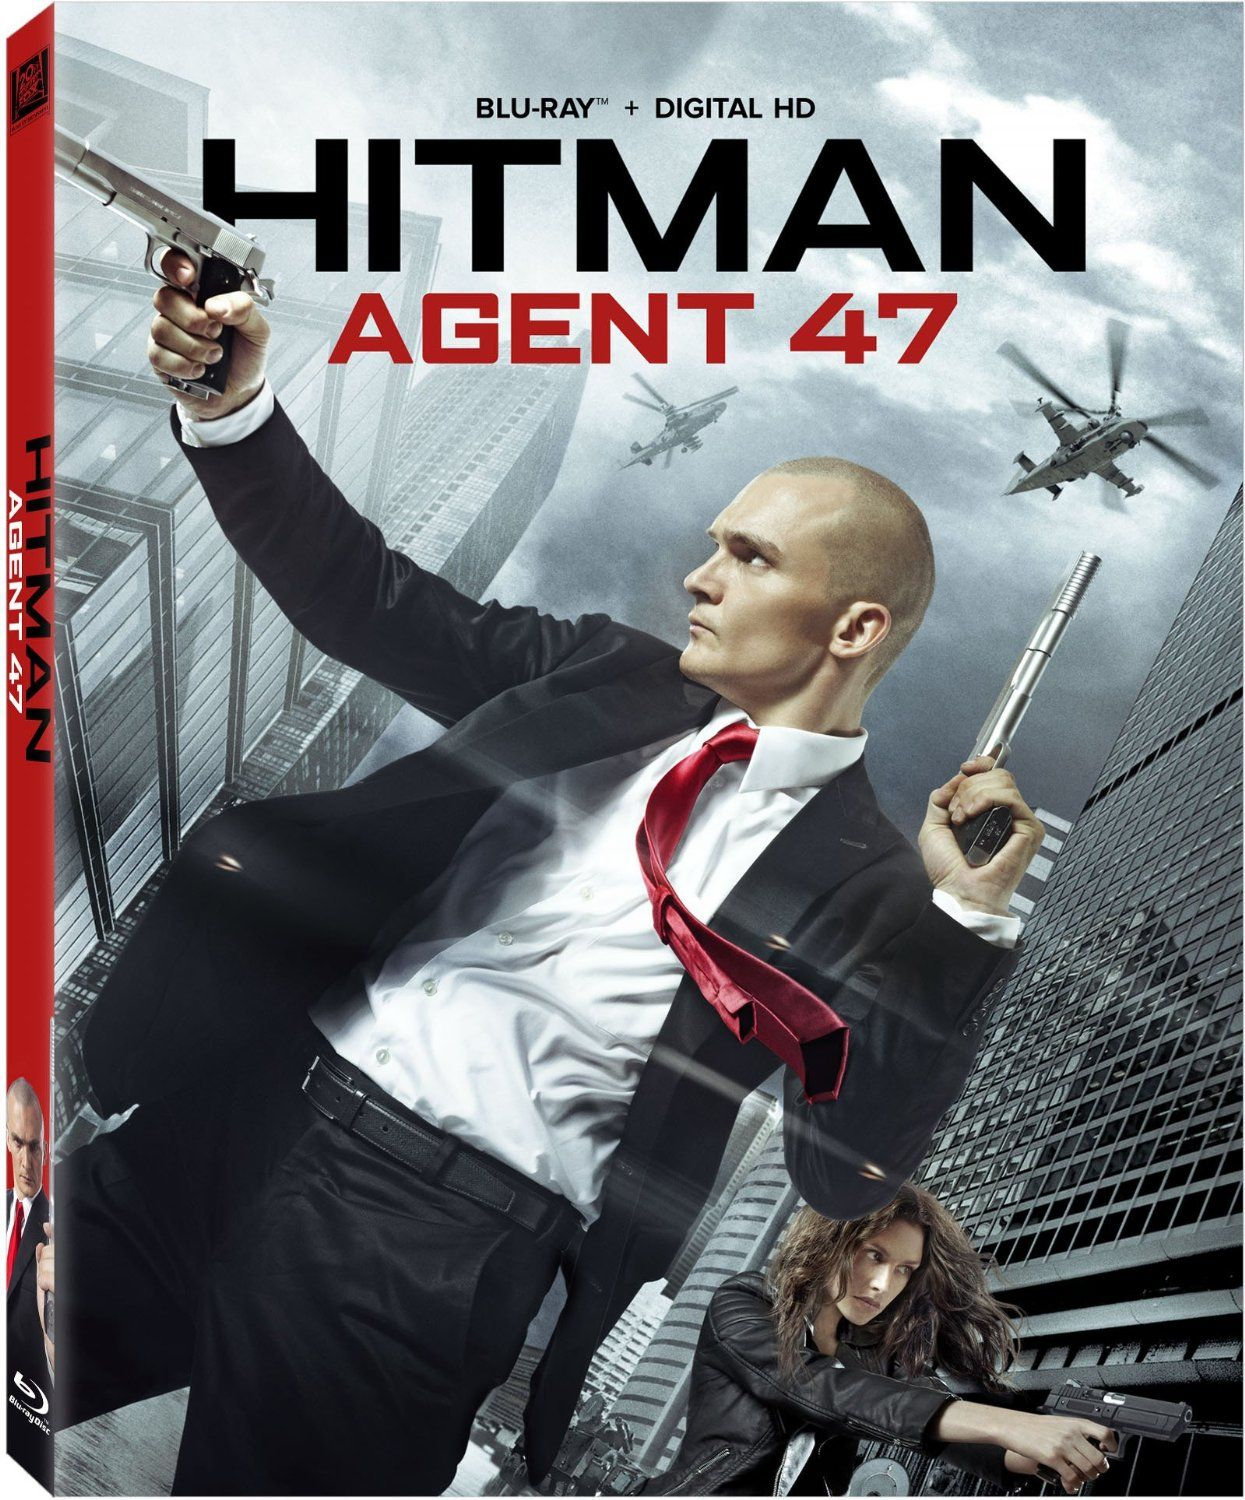 This Is The Second In The Hitman Movie Series Note You Could